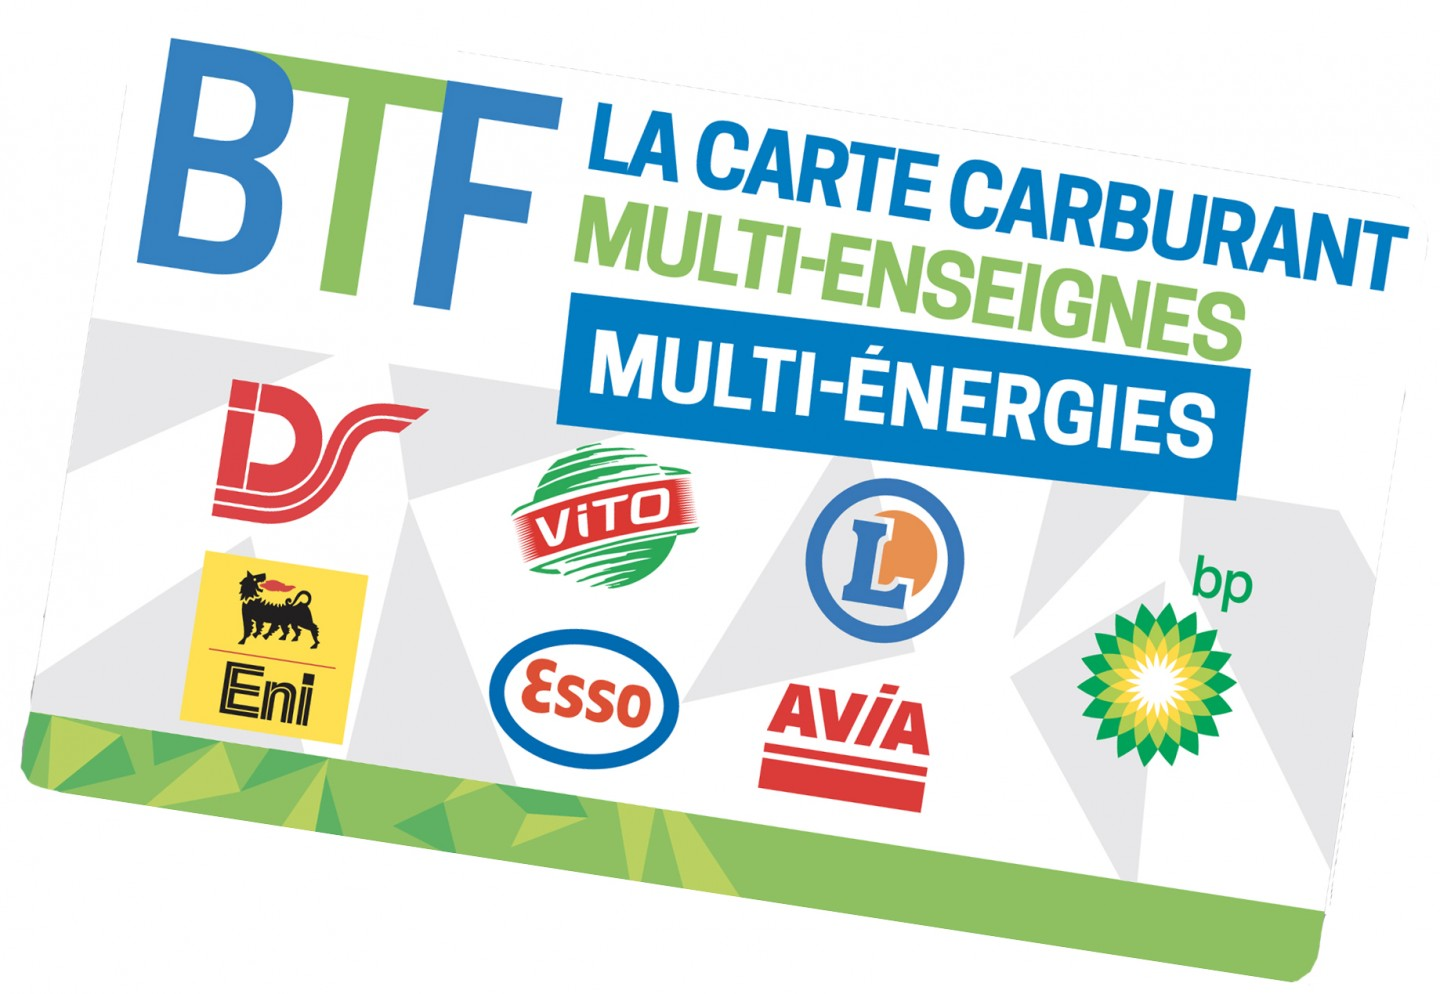 carte carburant btf